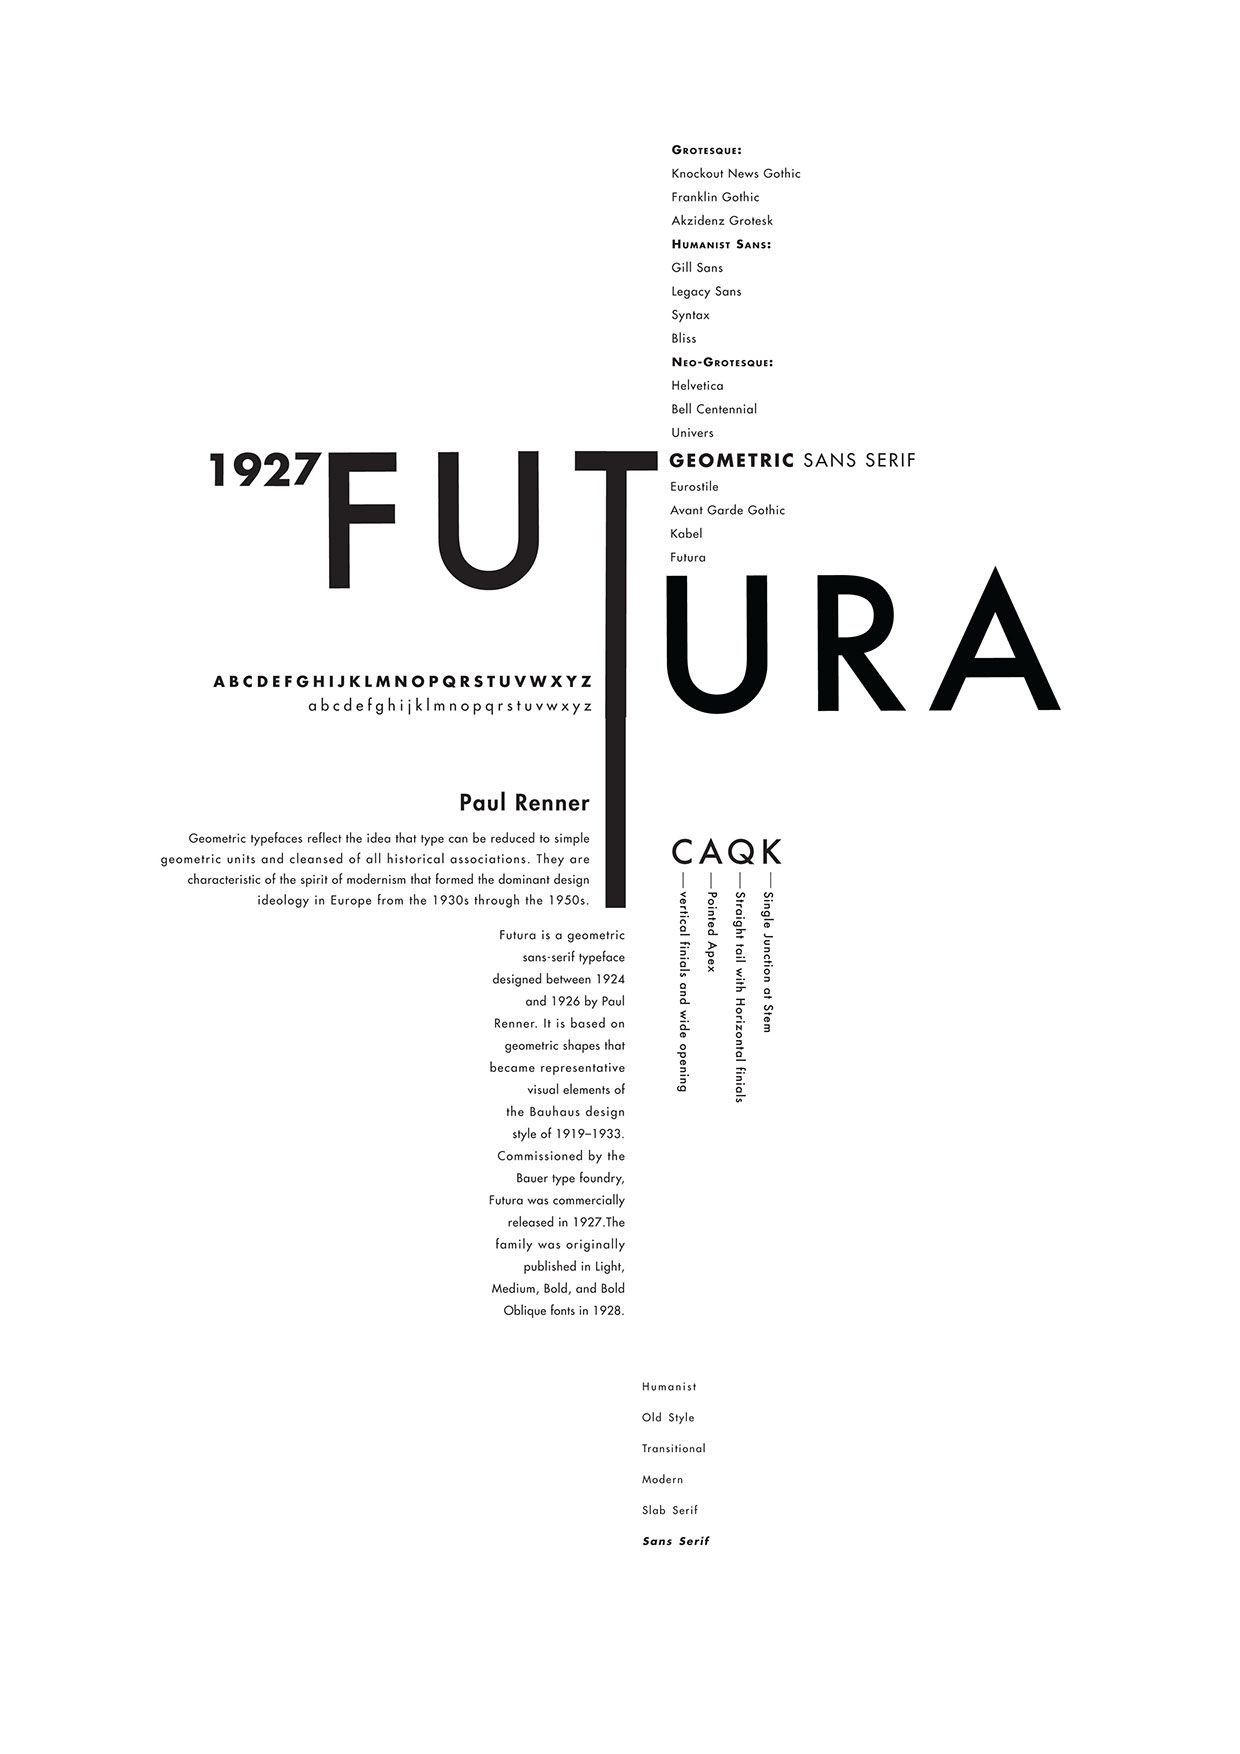 Classifying the typefaces: Futura, Rockwell and Adobe